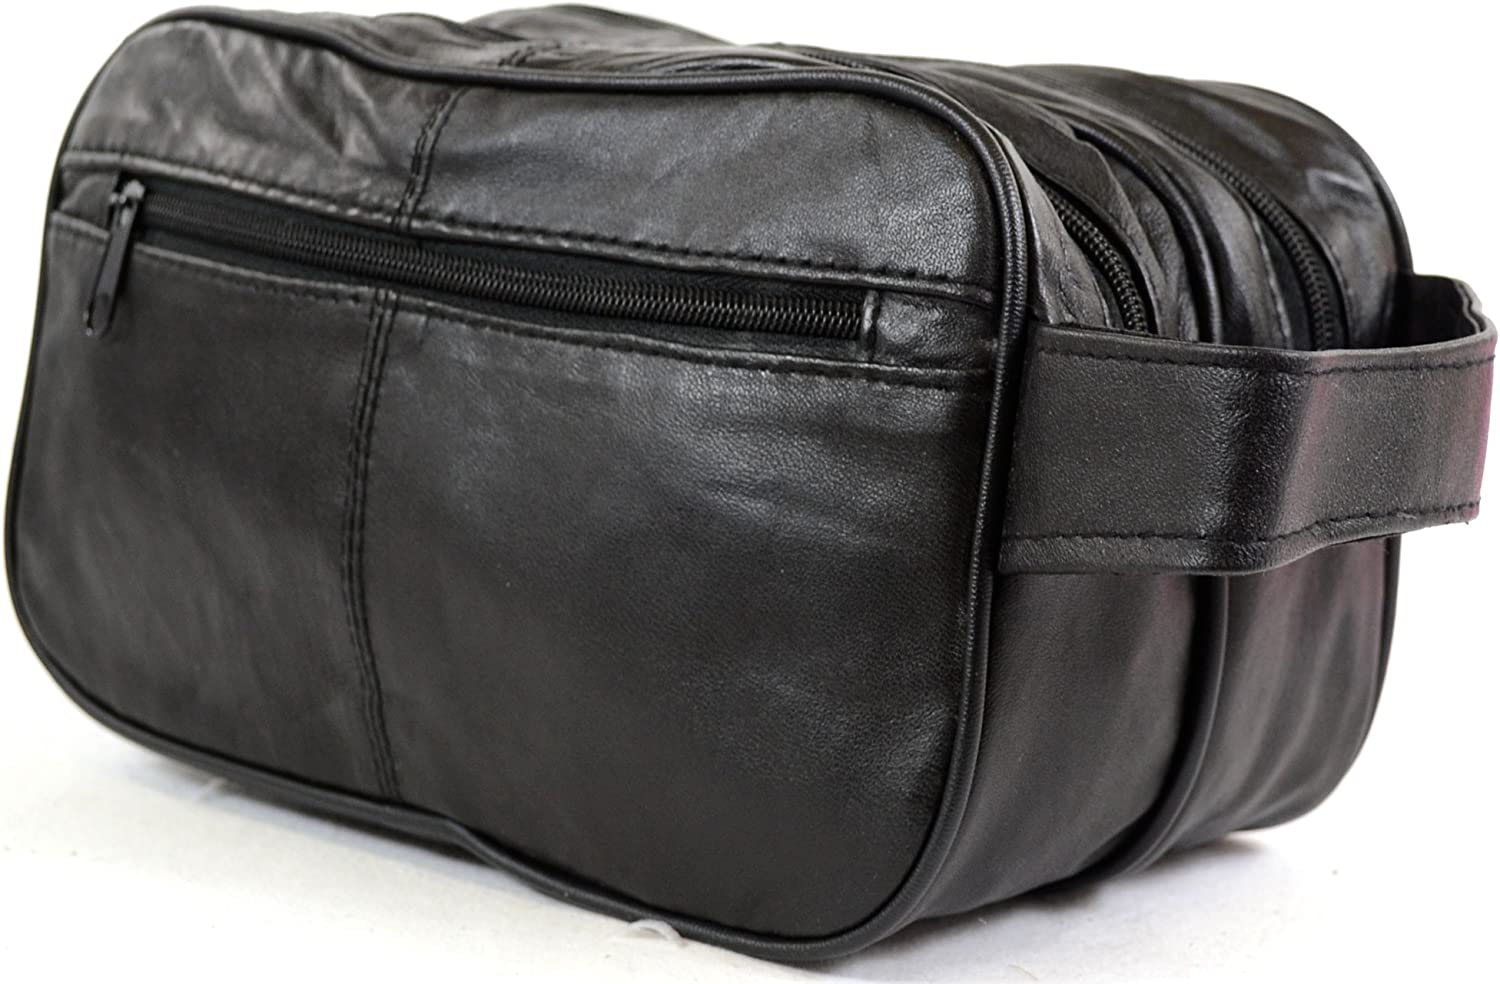 Mens Super Soft Nappa Leather Toiletries Travel Holiday Wash Bag Black